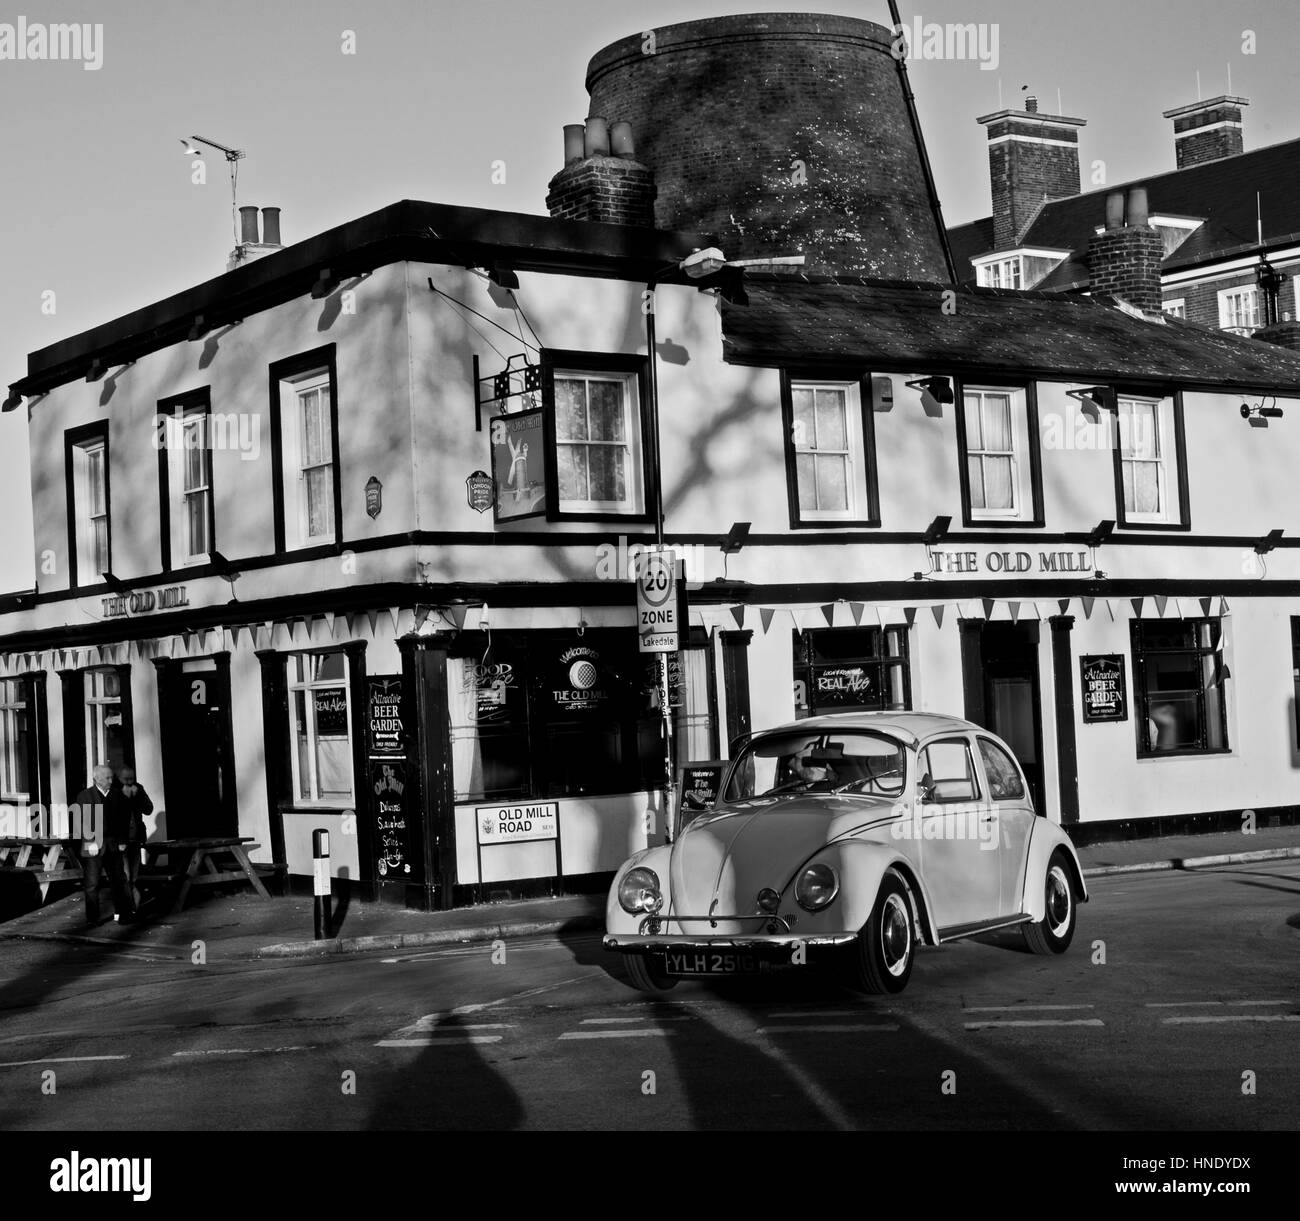 The Old Mill at Plumstead, London with 1968 VW Beetle - Stock Image